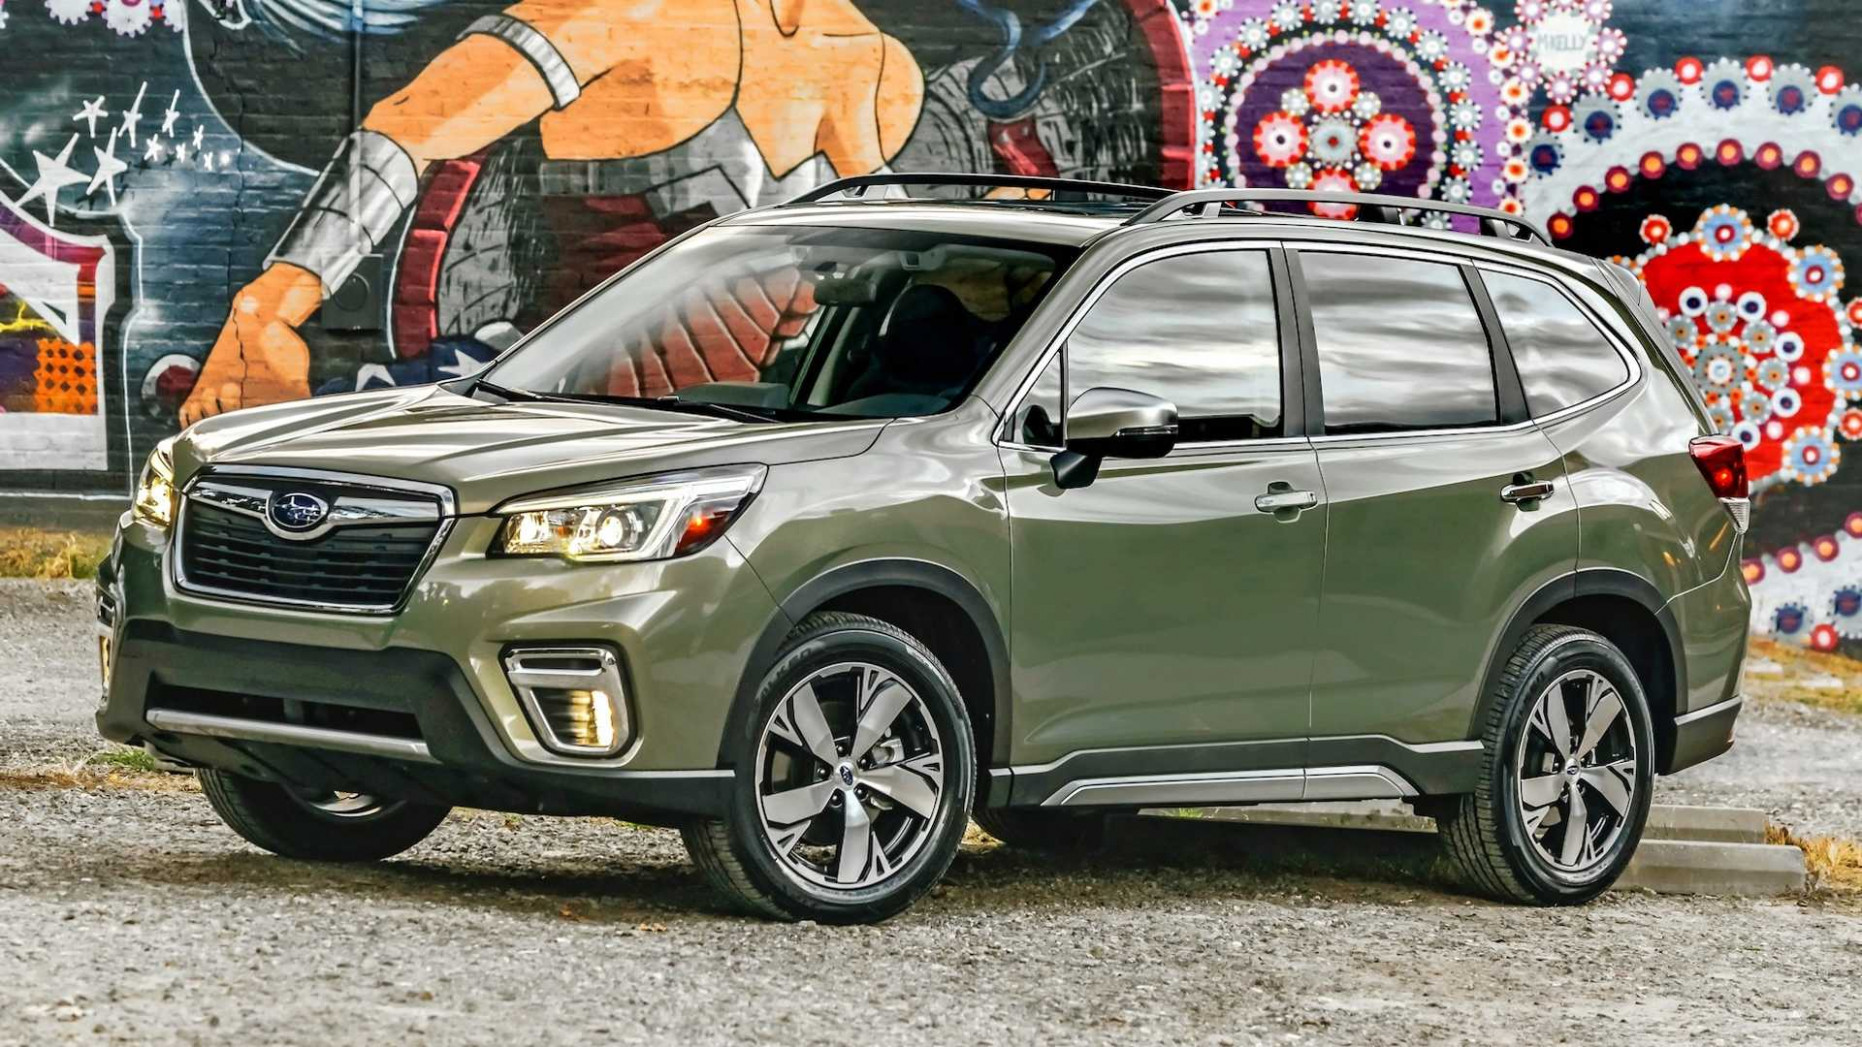 10 Subaru Forester Gets Price Bump, More Standard Safety Kit - 2020 subaru forester review